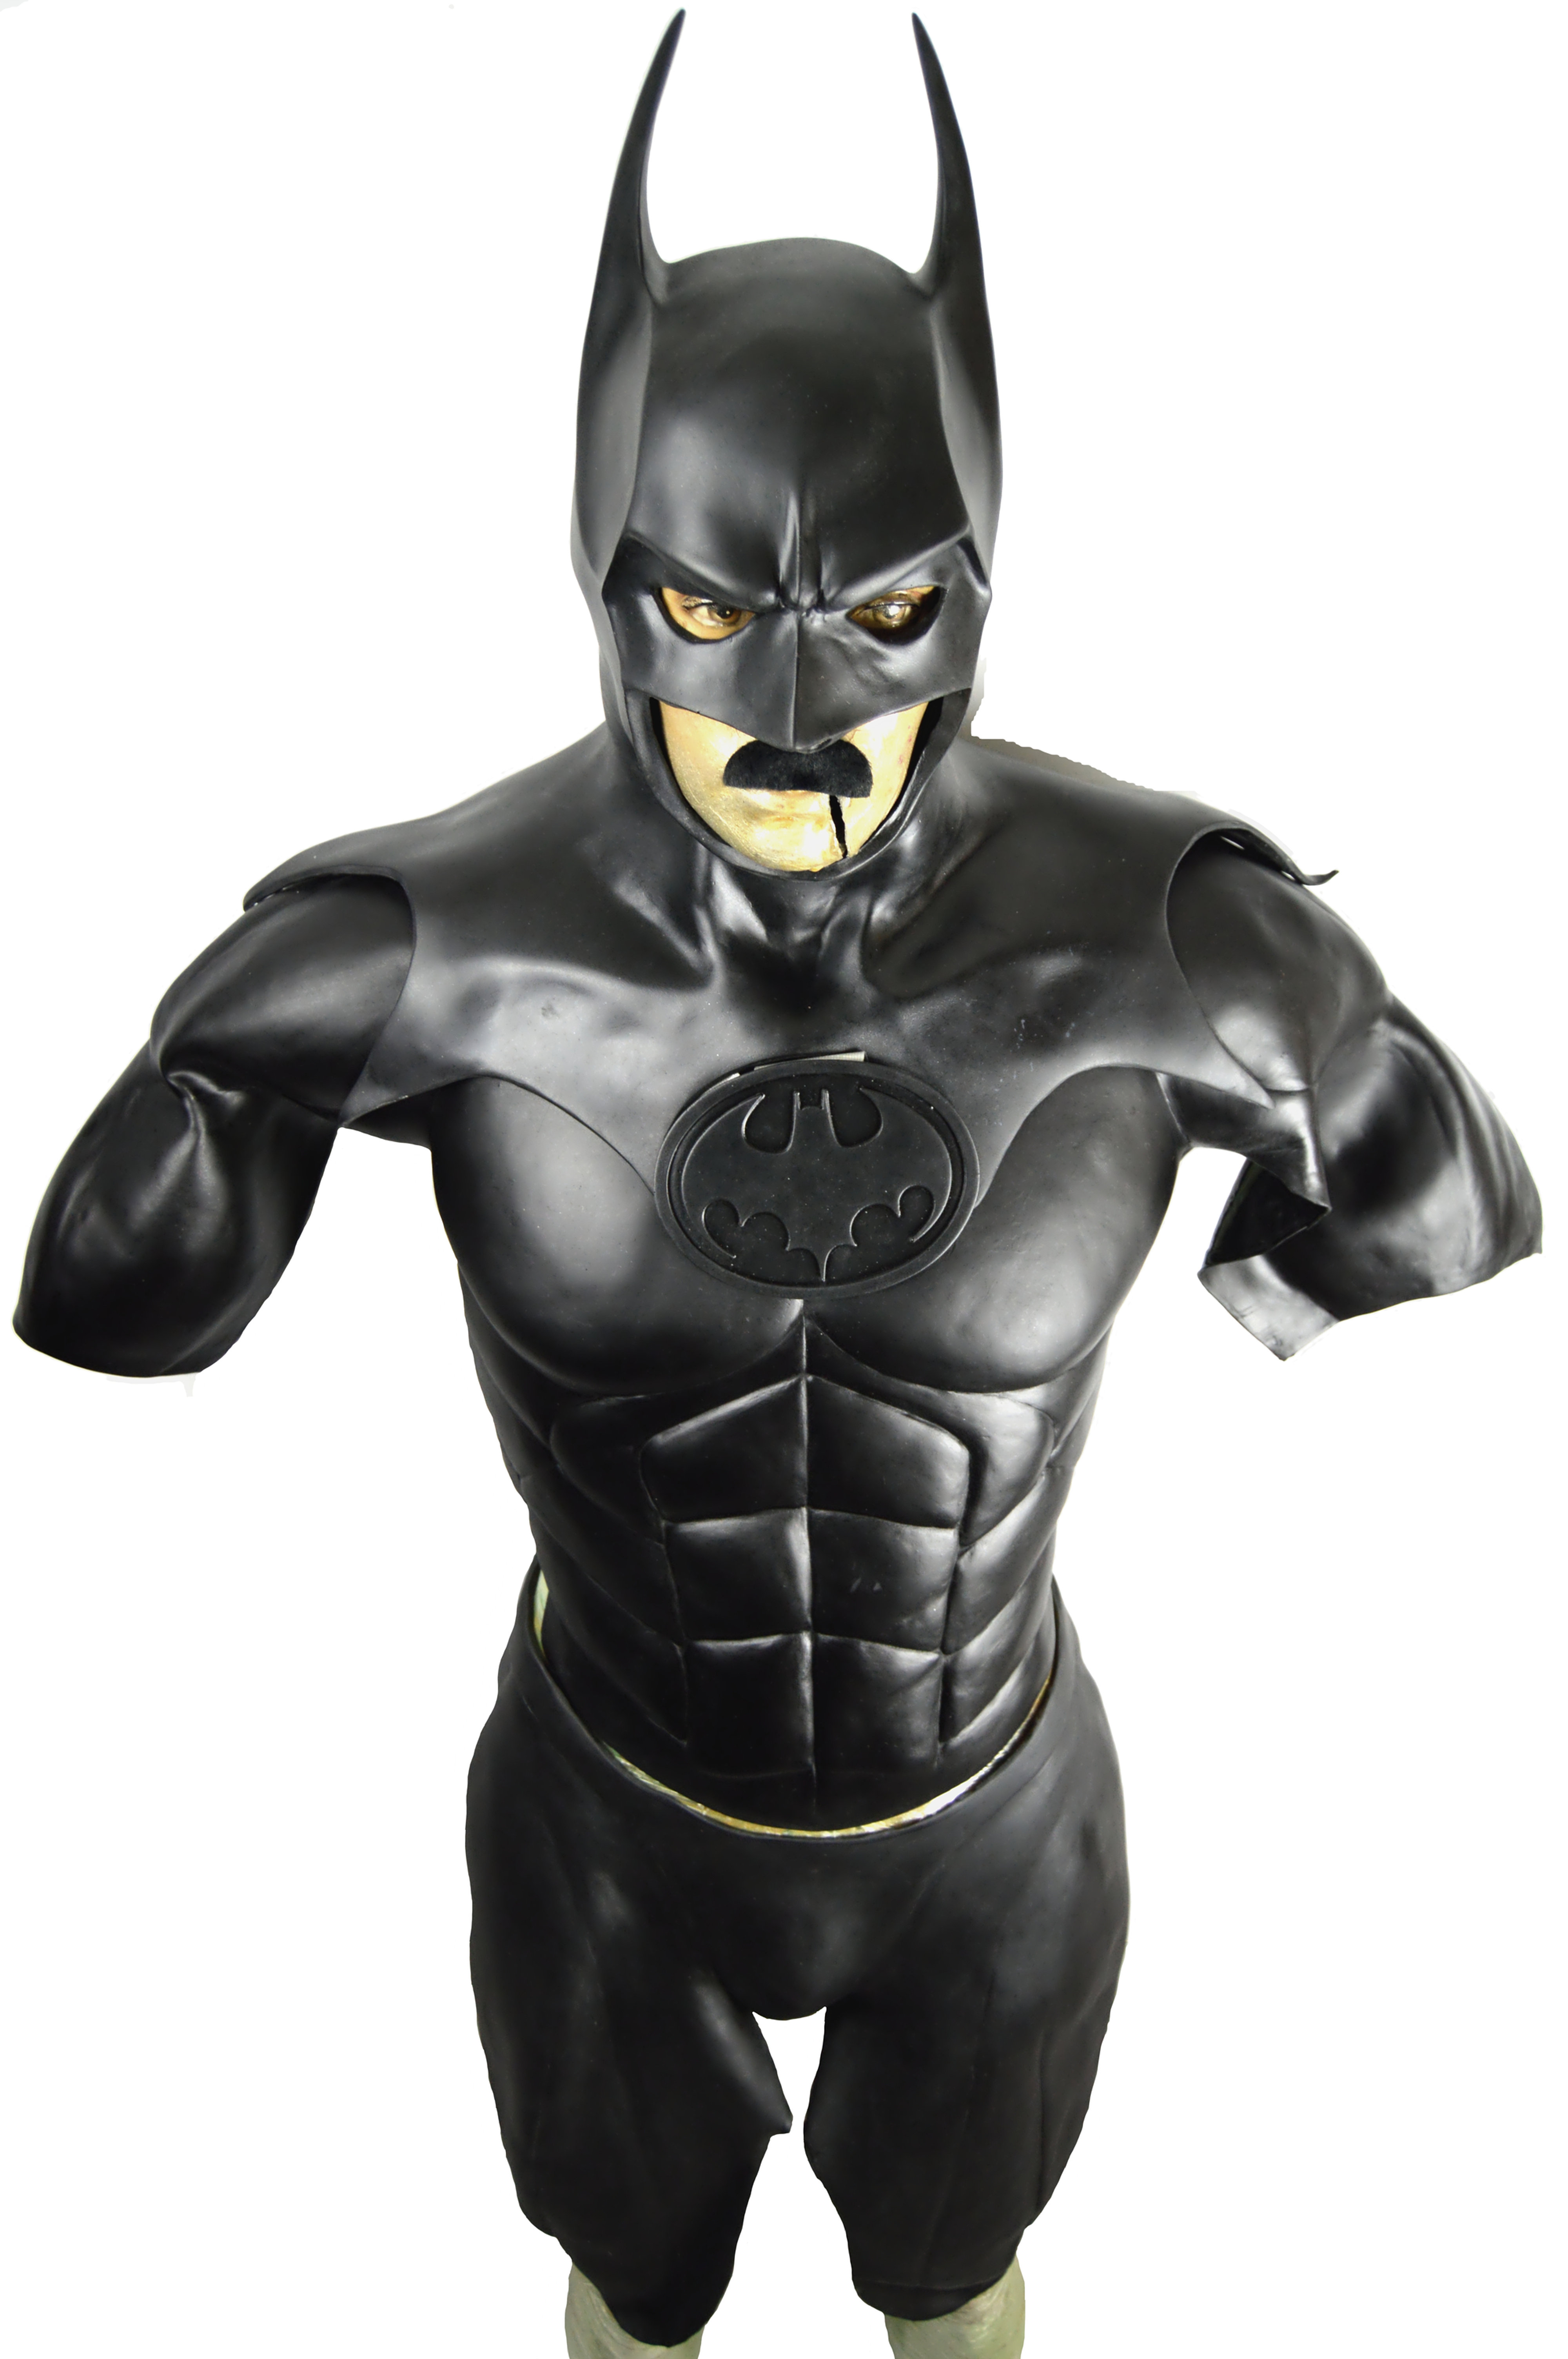 Batman costume and accessories for sale